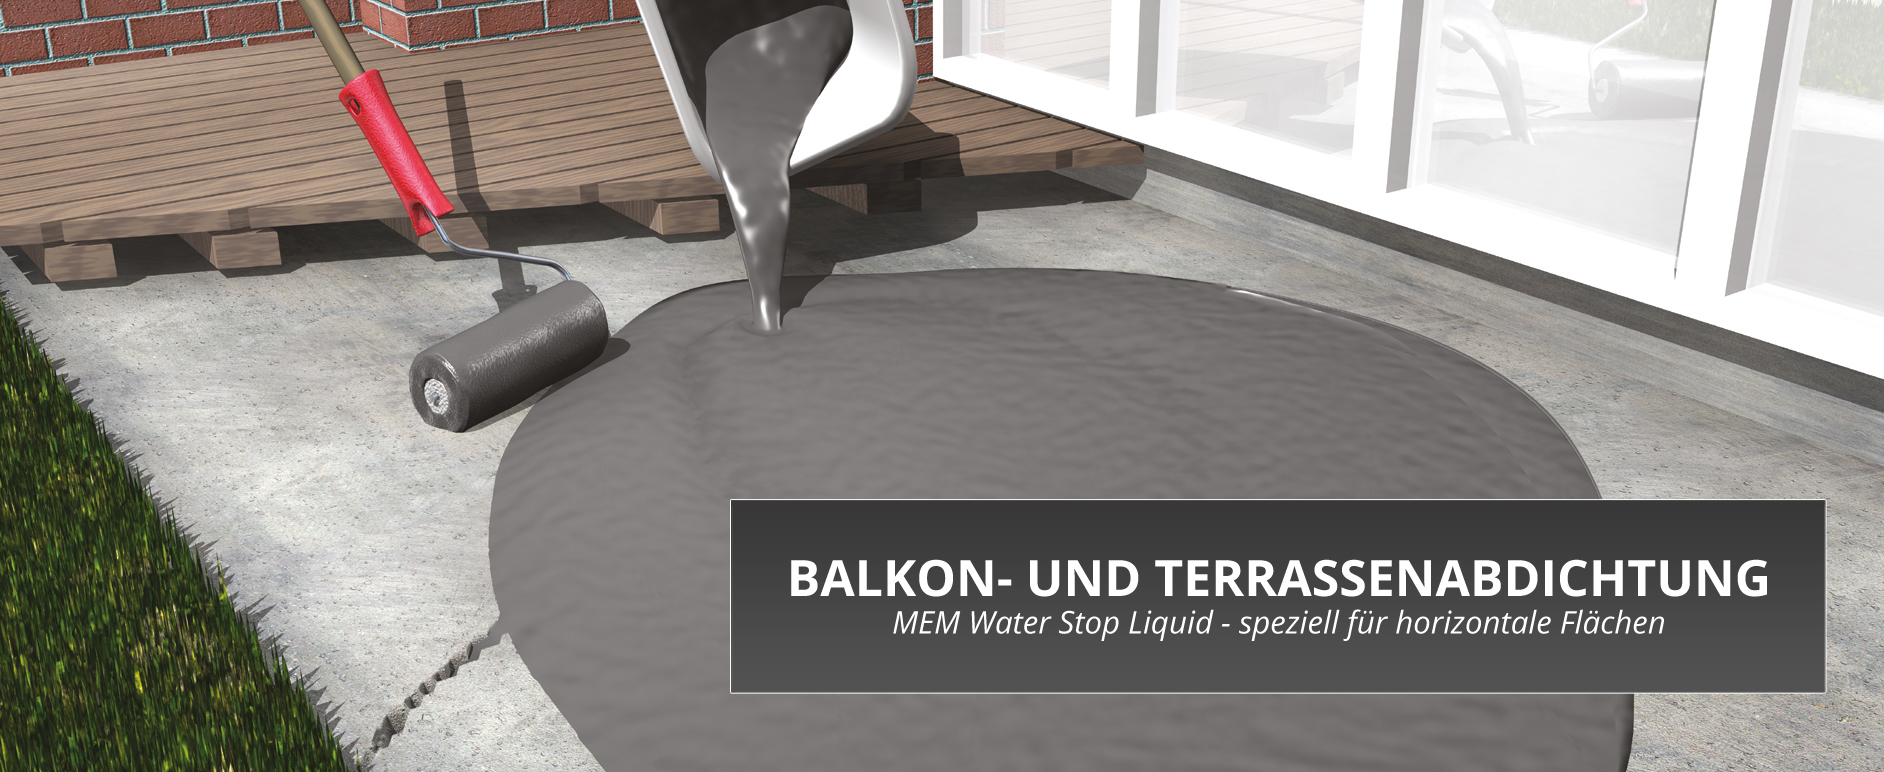 balkon und terrassenabdichtung sperr schicht dicht schicht baumarkt online shop. Black Bedroom Furniture Sets. Home Design Ideas